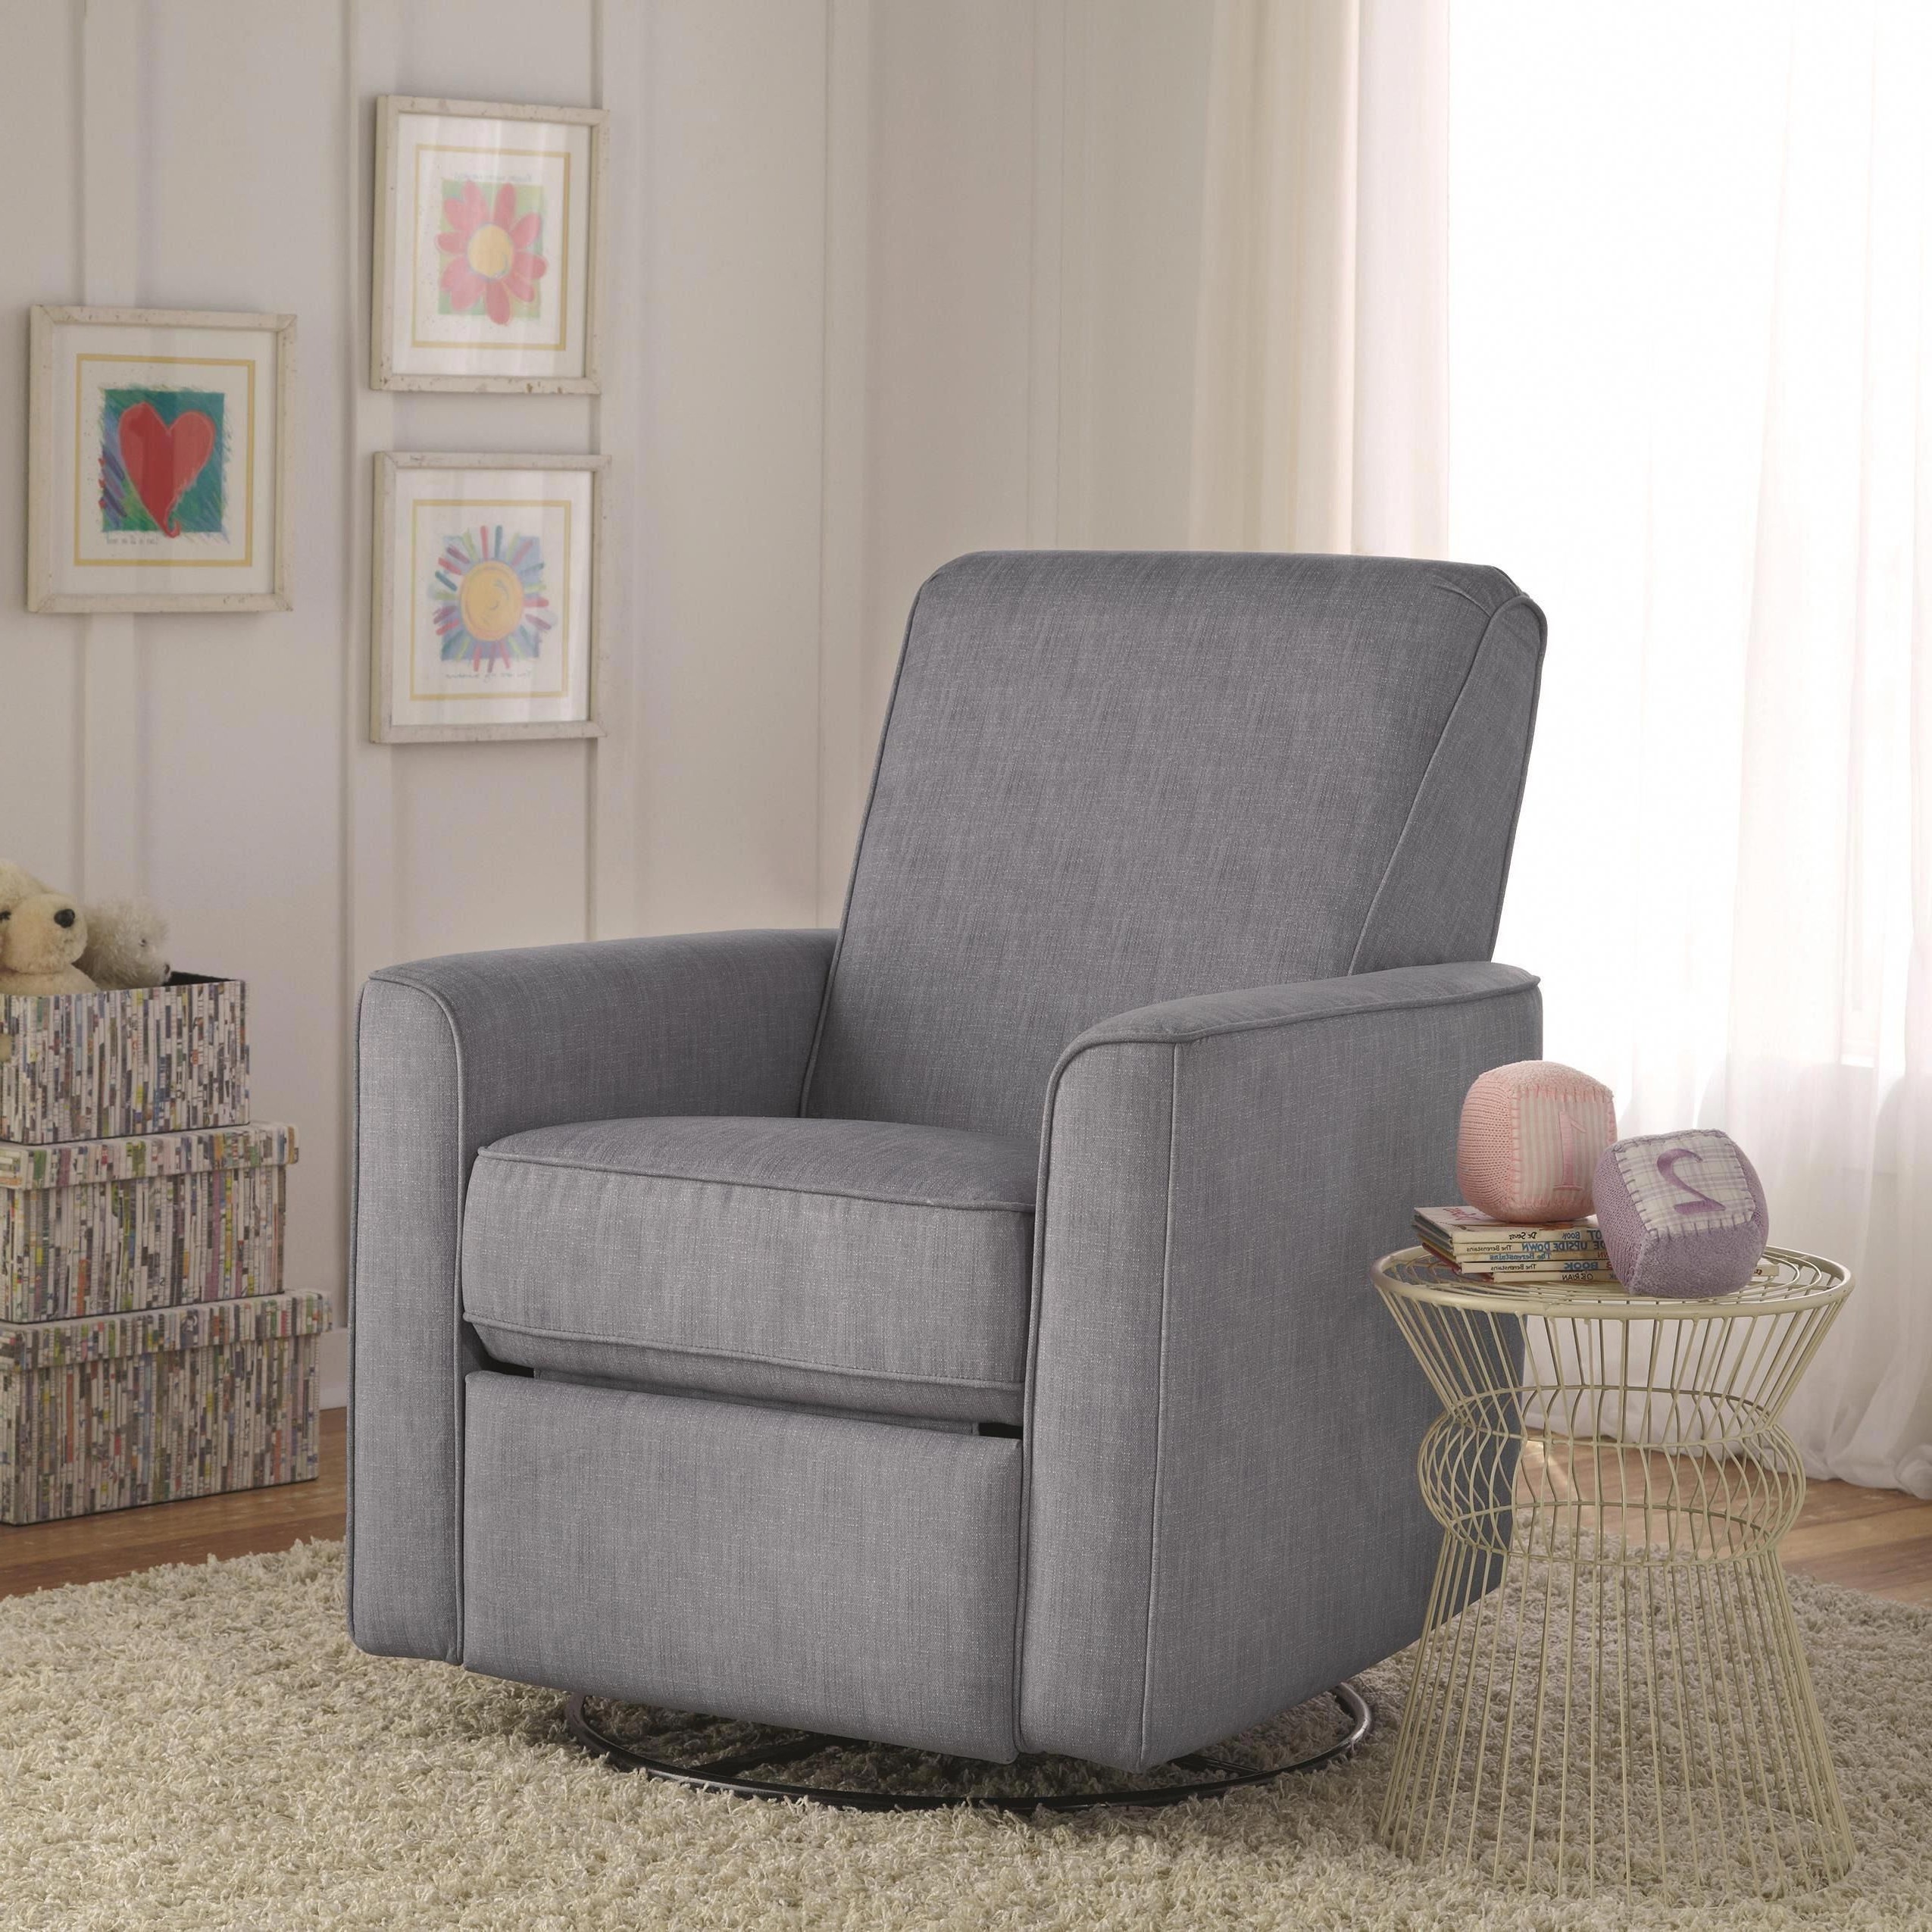 Zoey Grey Nursery Swivel Glider Recliner Chair Is Handcrafted Using In 2018 Decker Ii Fabric Swivel Glider Recliners (Gallery 6 of 20)